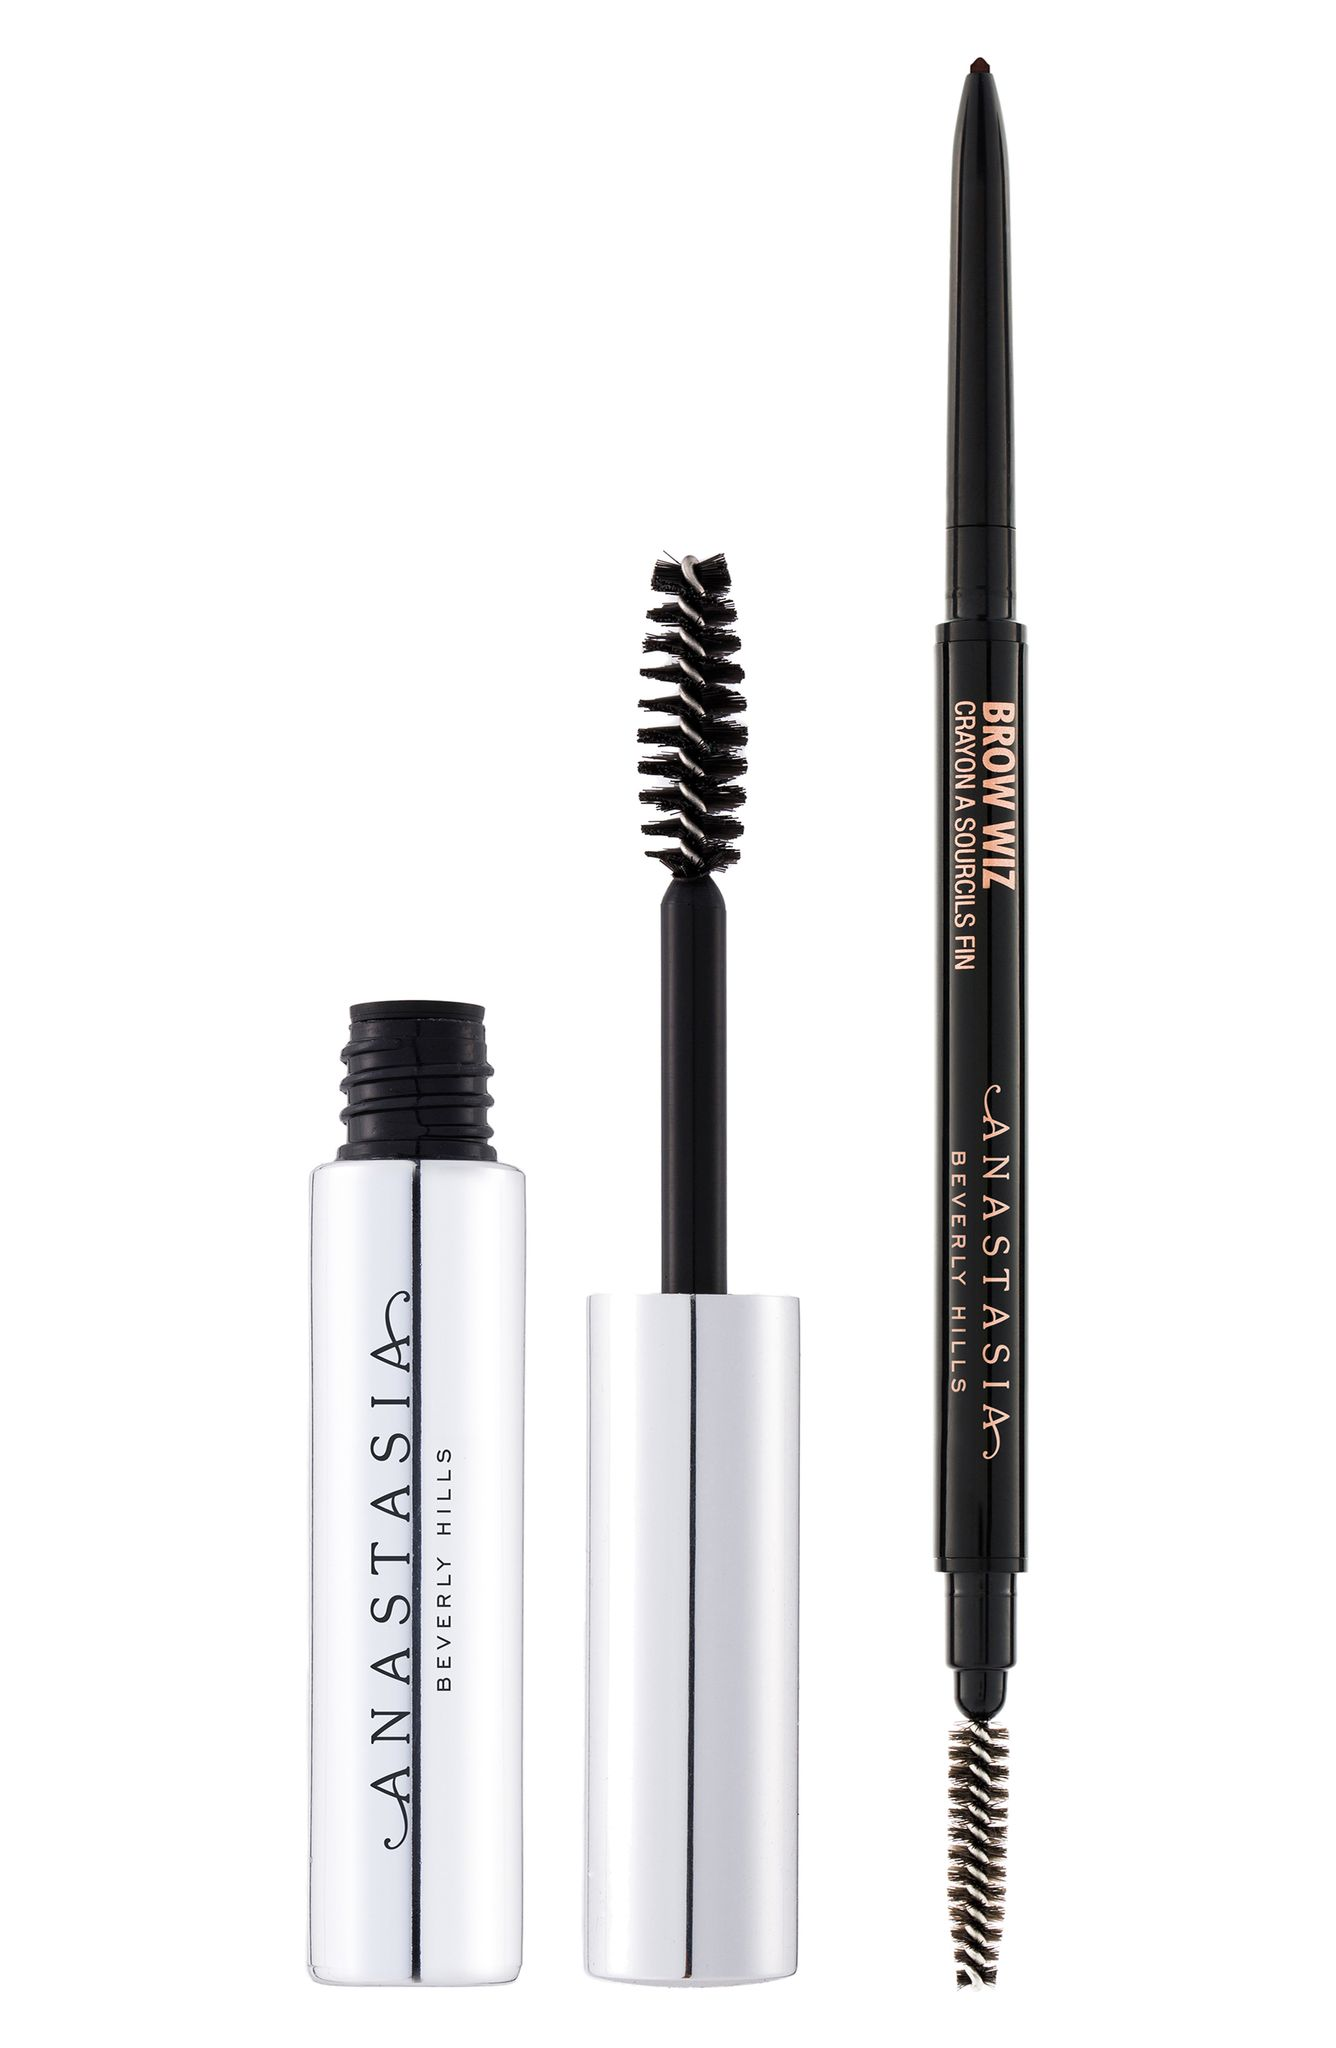 Anastasia Brow Duo Set (normally $43): $25 (Image: Nordstrom){ }